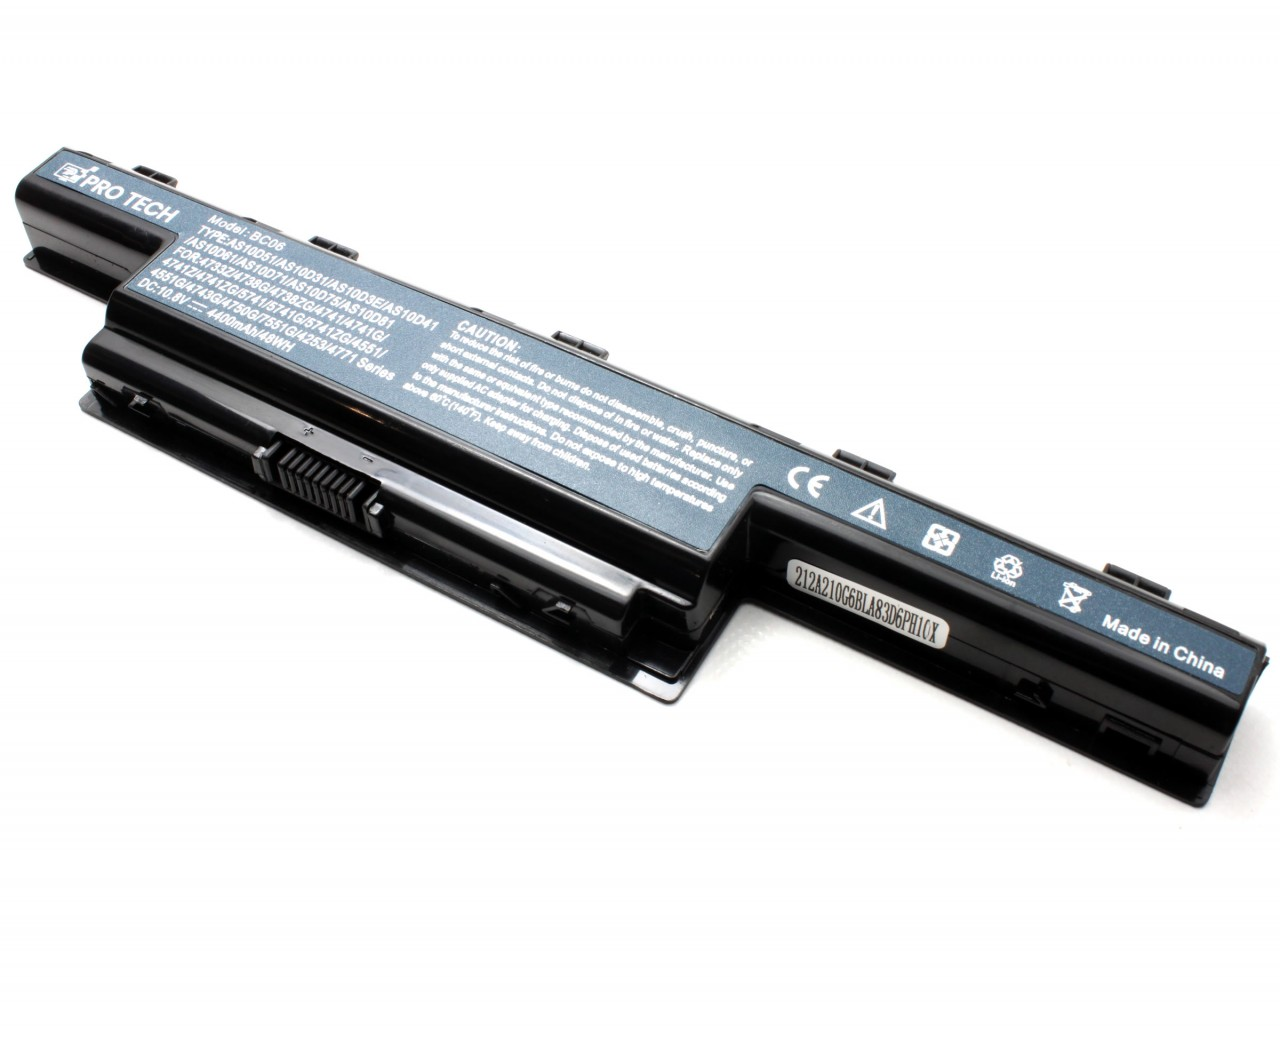 Baterie Packard Bell EasyNote NM85 6 celule imagine powerlaptop.ro 2021